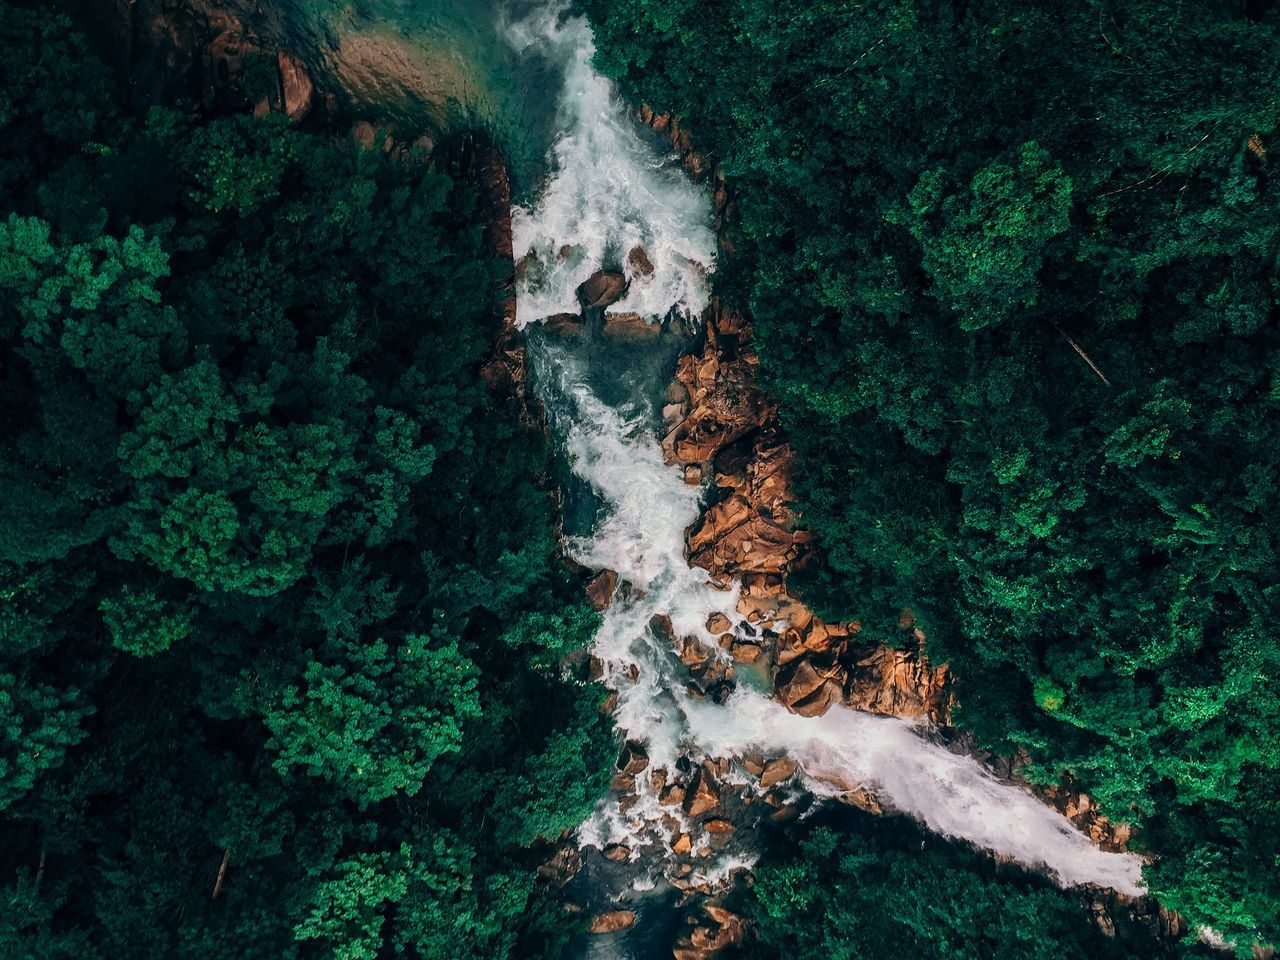 // world from above // Flying High Drone  Nature Nature_collection Vietnam Danang EyeEm Nature Lover Thedarksquare Outdoors No People Freshness EyeEm Beauty In Nature AMPt_community Tranquility Waterfall Aerial View Aerial Shot ASIA Tree Rock The Great Outdoors - 2017 EyeEm Awards